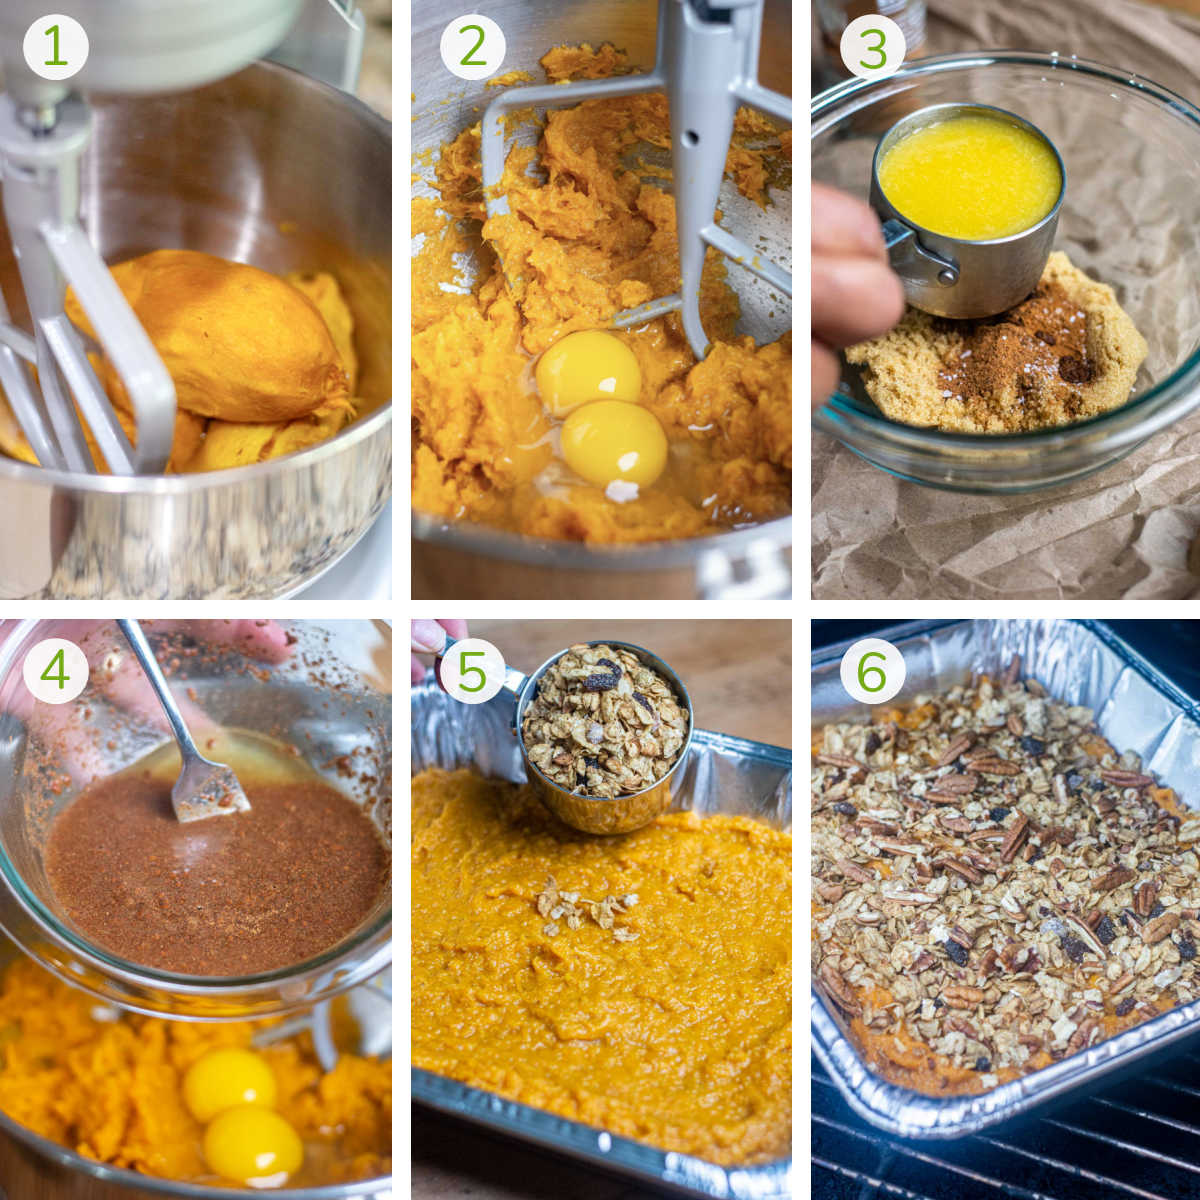 six instructional photos showing how to mix the potatoes, add eggs and flavorings, pouring into a disposable pan, topping and grilling.